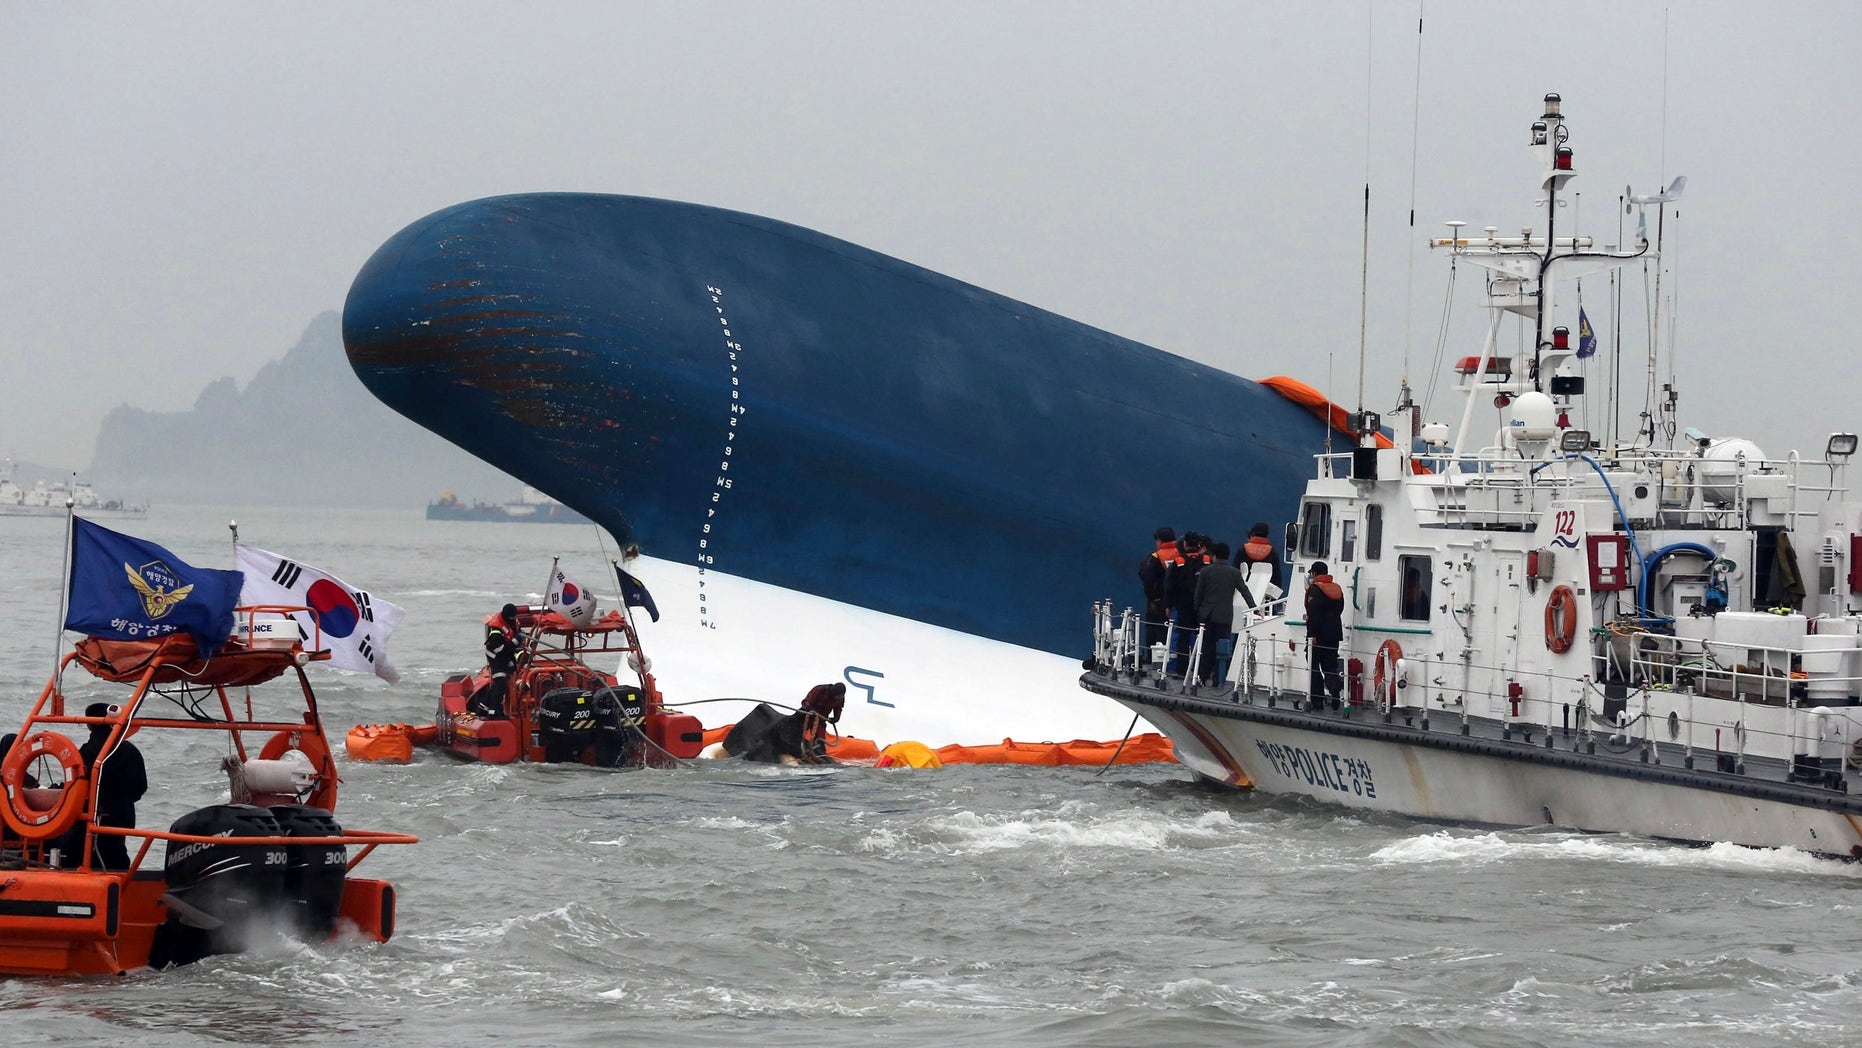 South Korean Coast Guard officers try to rescue missing passengers from a sunken ferry in the water off the southern coast near Jindo, south of Seoul, South Korea, Thursday, April 17, 2014.  Fears rose Thursday for the fate of more than 280 passengers still missing more than 24 hours after their ferry flipped onto its side and filled with water off the southern coast of South Korea. (AP Photo/Yonhap) KOREA OUT